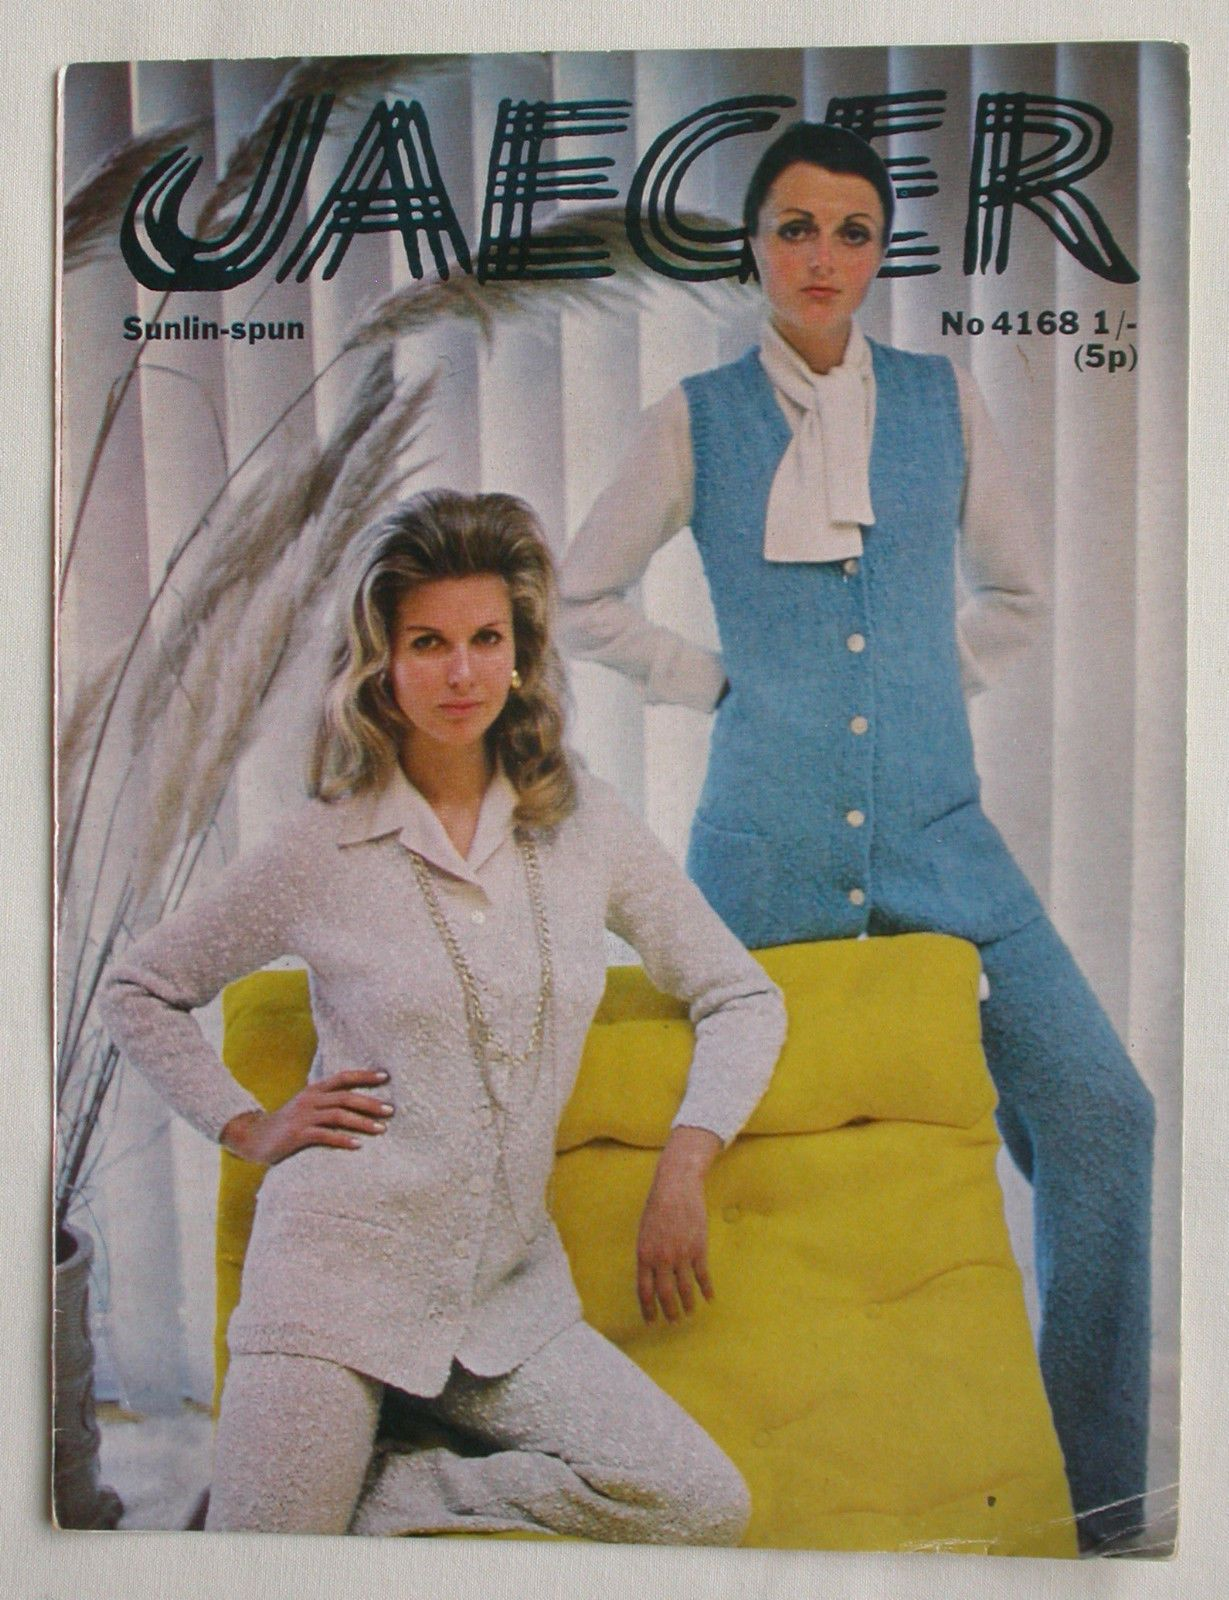 Jaeger sunlin spun knitting pattern 34 to 38 bust jacket and jaeger sunlin spun knitting pattern 34 to 38 bust jacket and trousers bankloansurffo Images